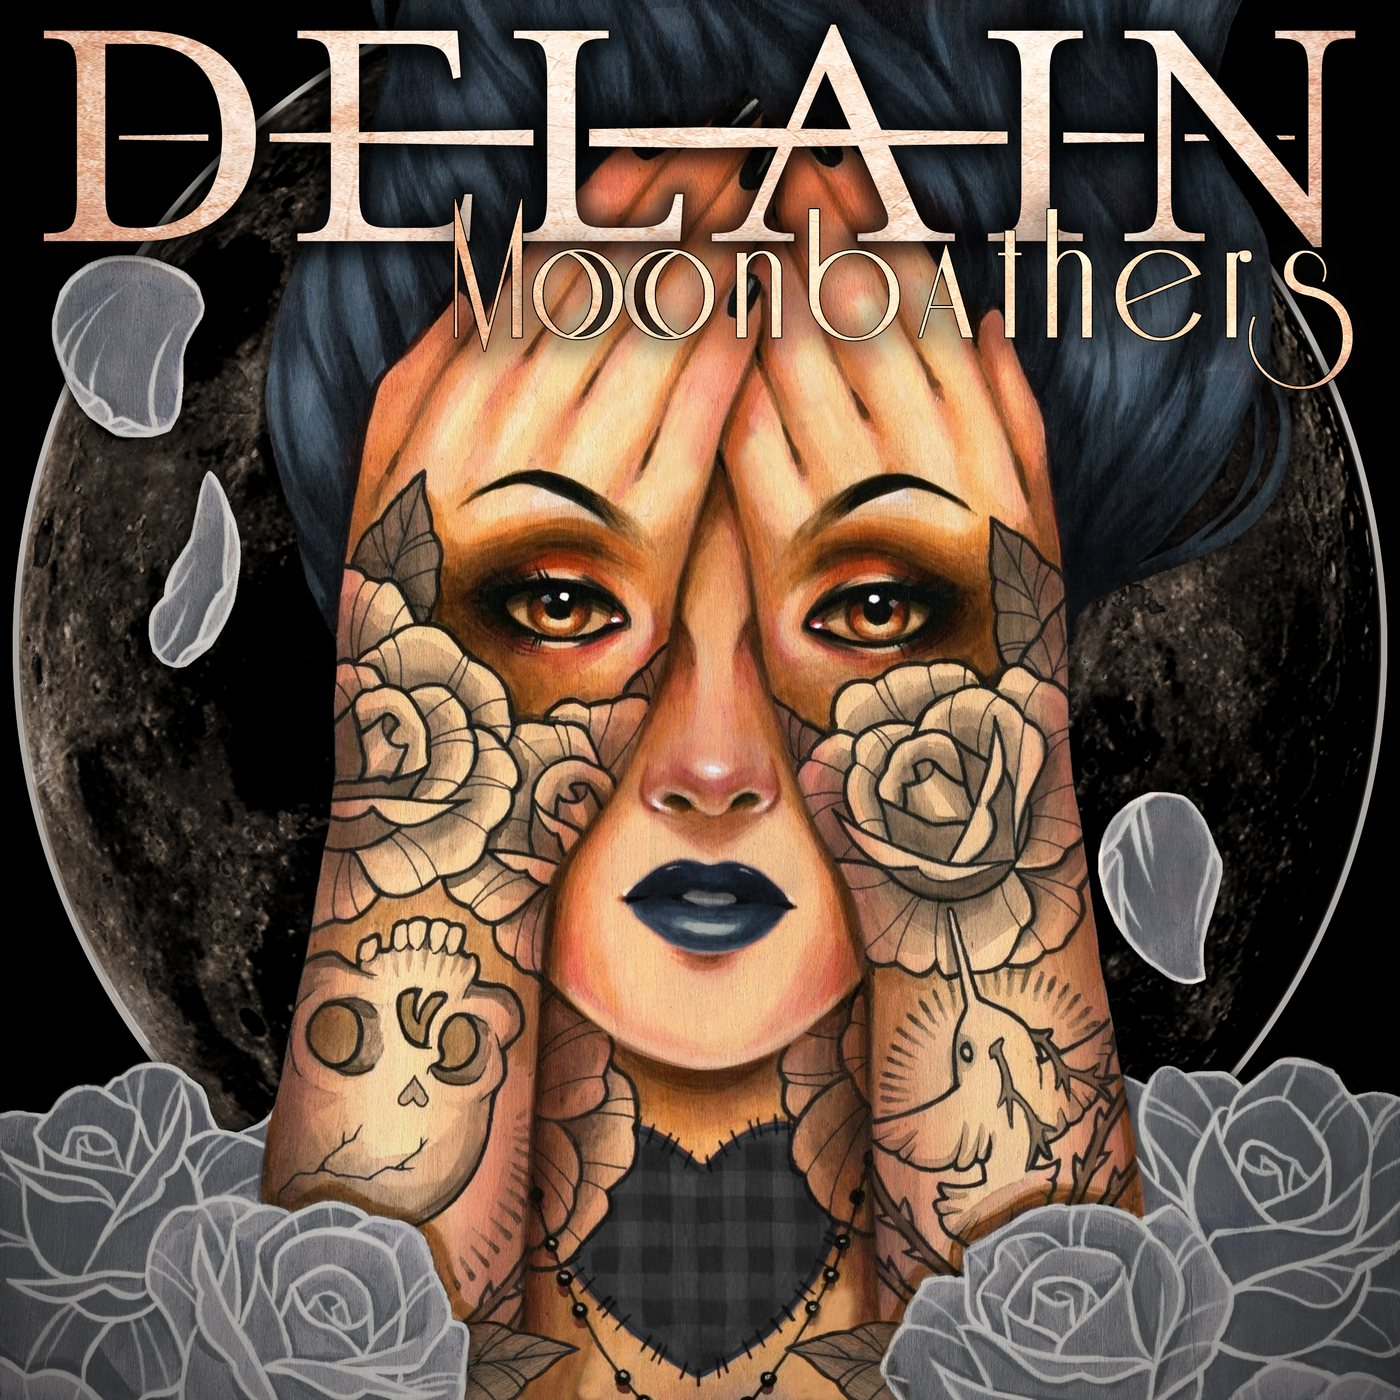 Delain: Moonbathers (2016) Book Cover